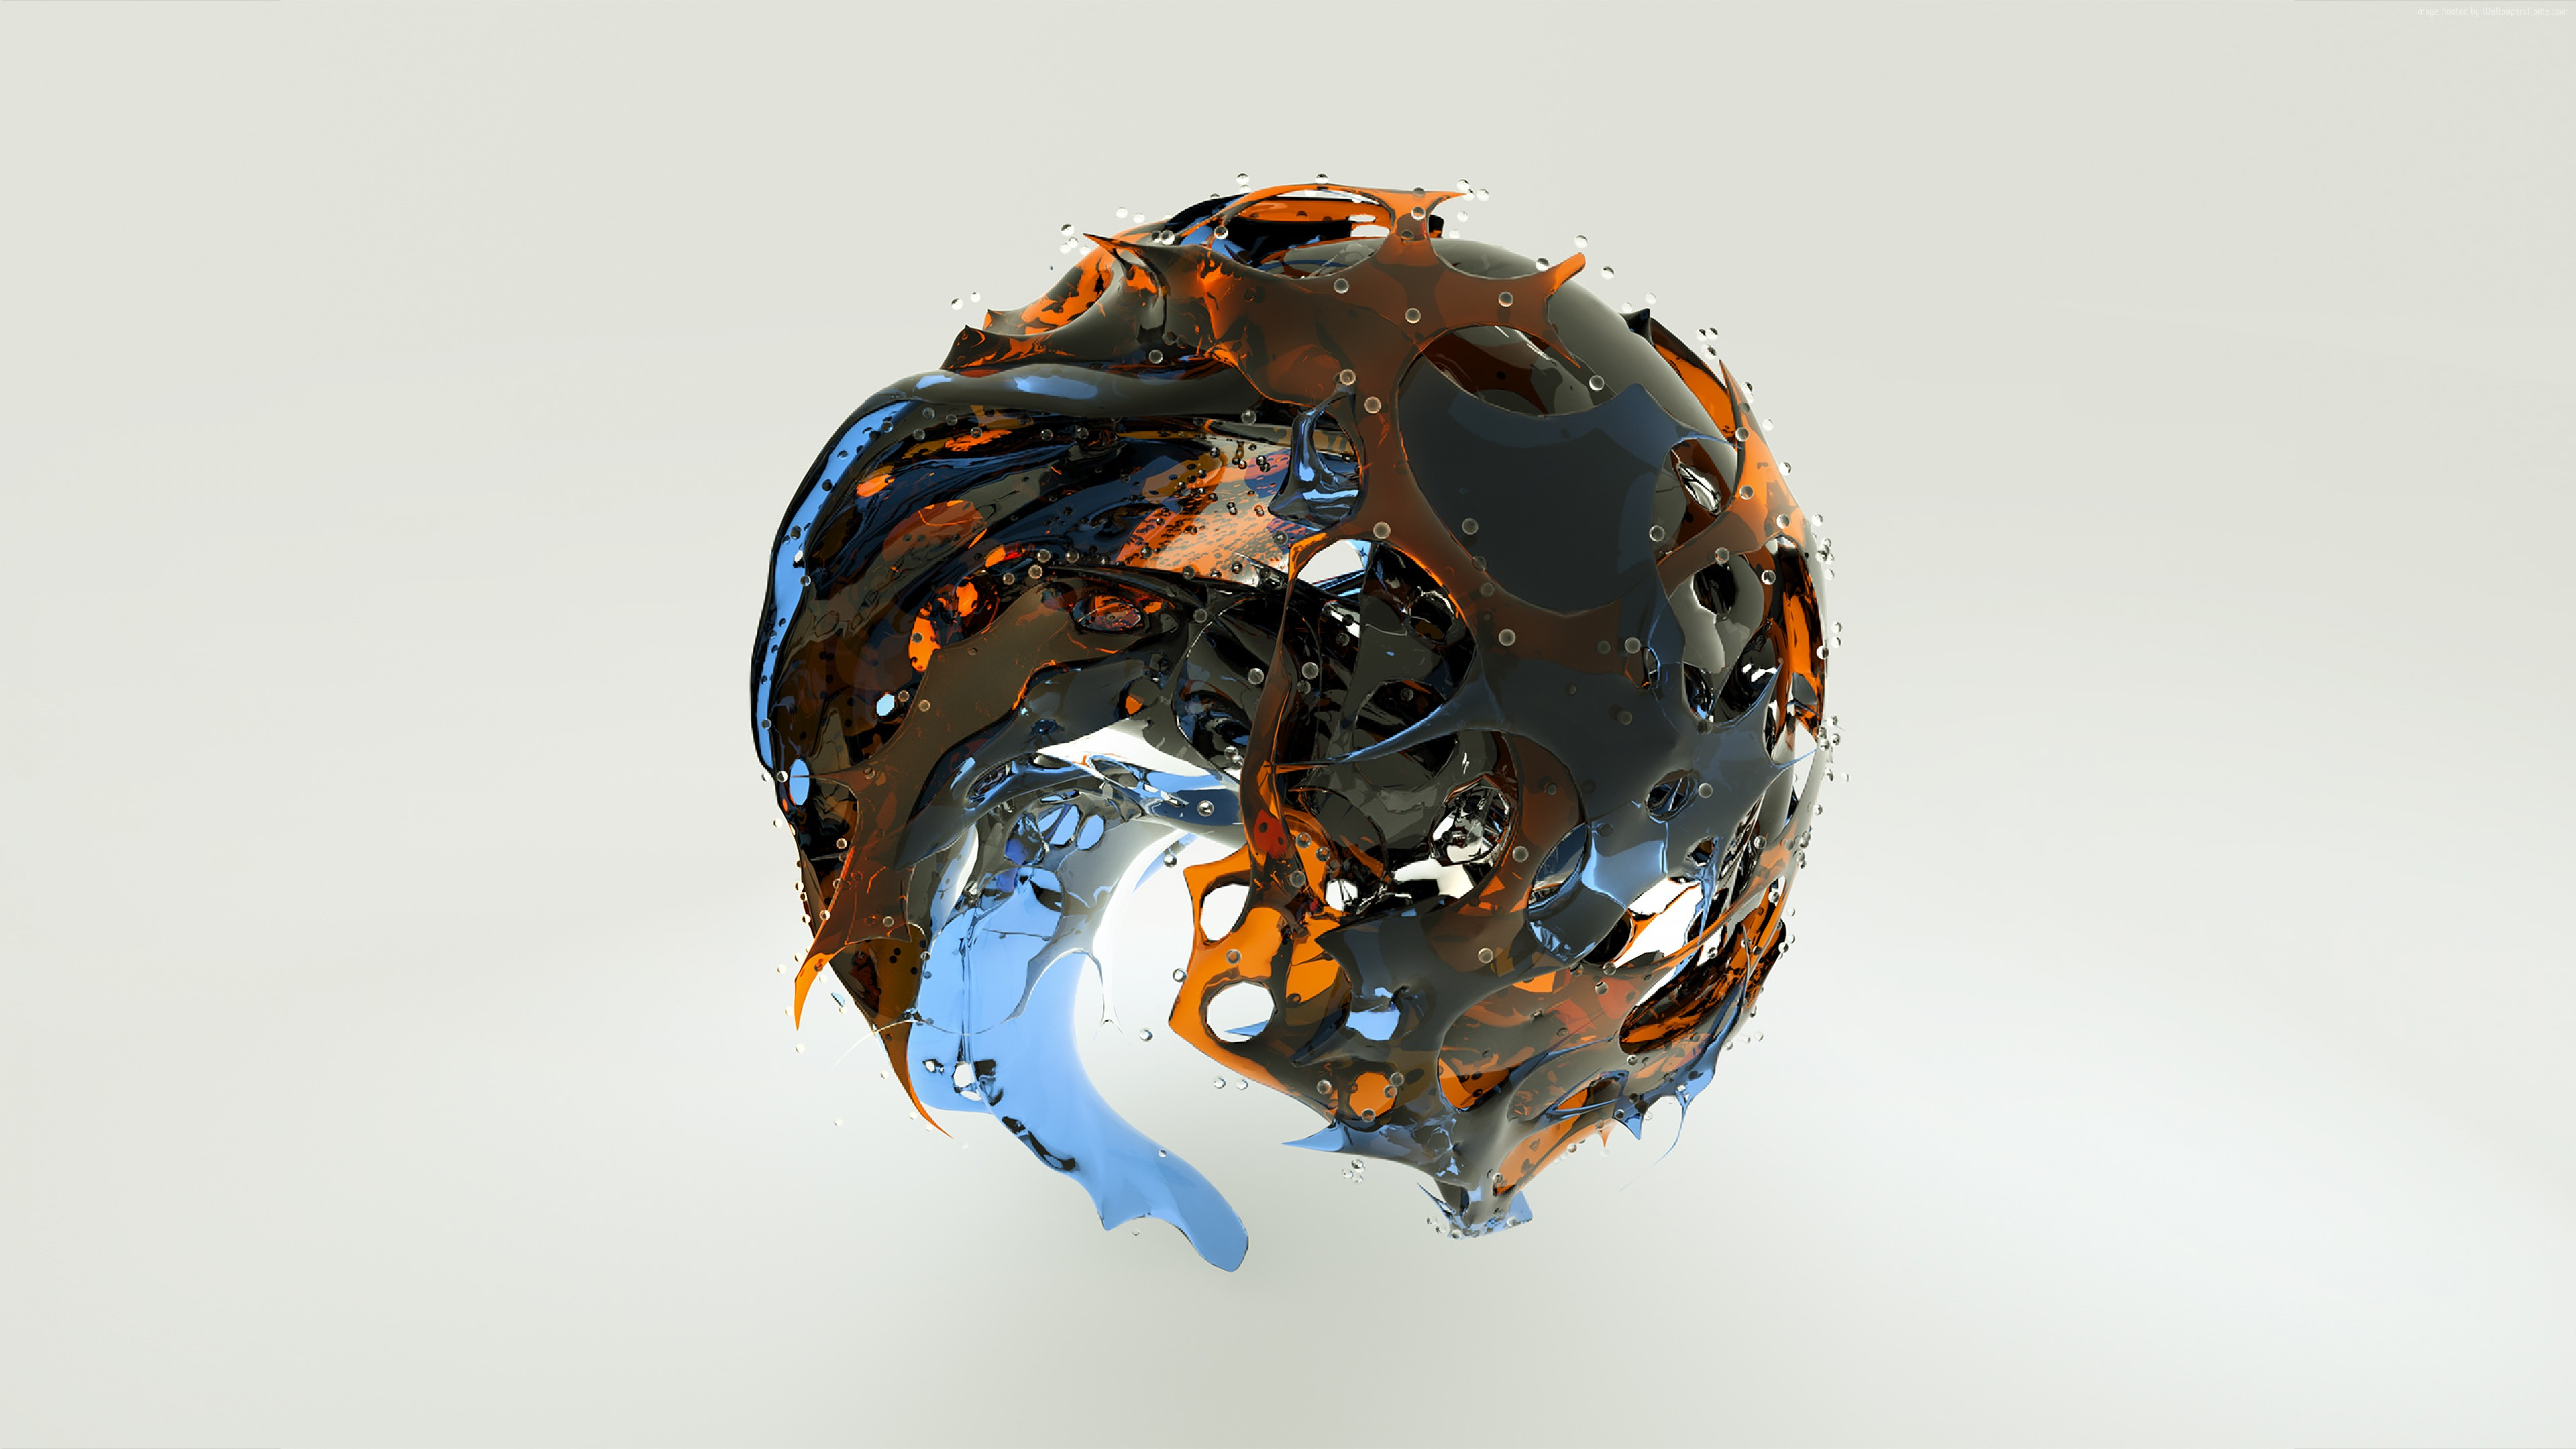 Wallpaper sphere, 3D, glass, HD, Abstract 4134710497 - Wallpaper sphere, 3D, glass, HD, Abstract - Sphere, HD, Glass, 3D